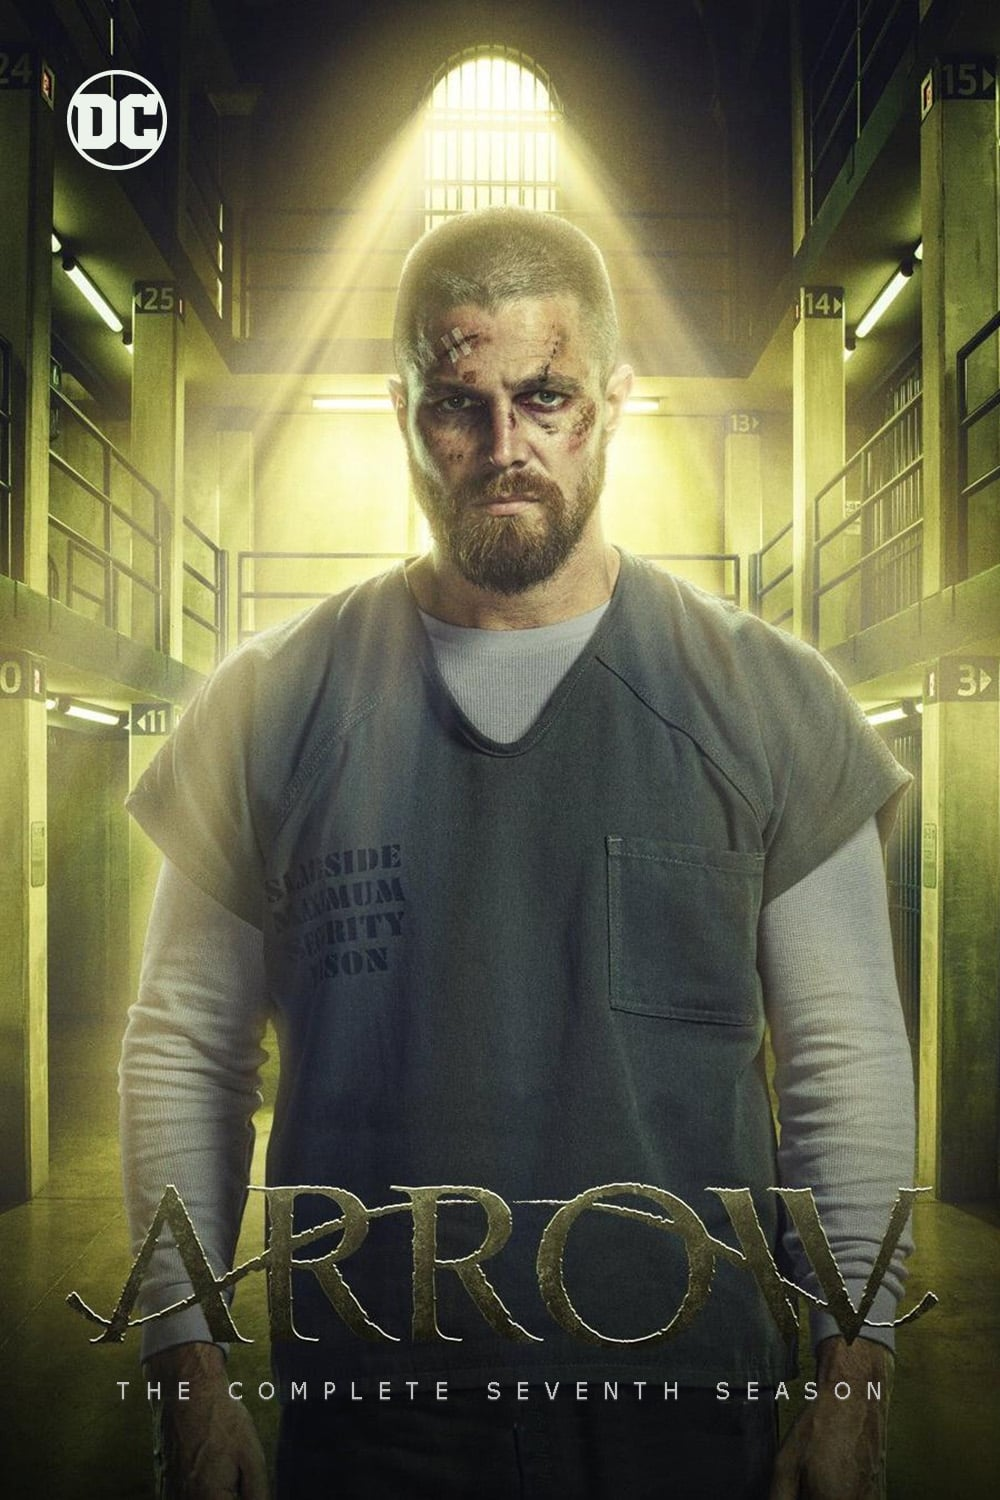 Arrow Season 7 Episode 9 Added